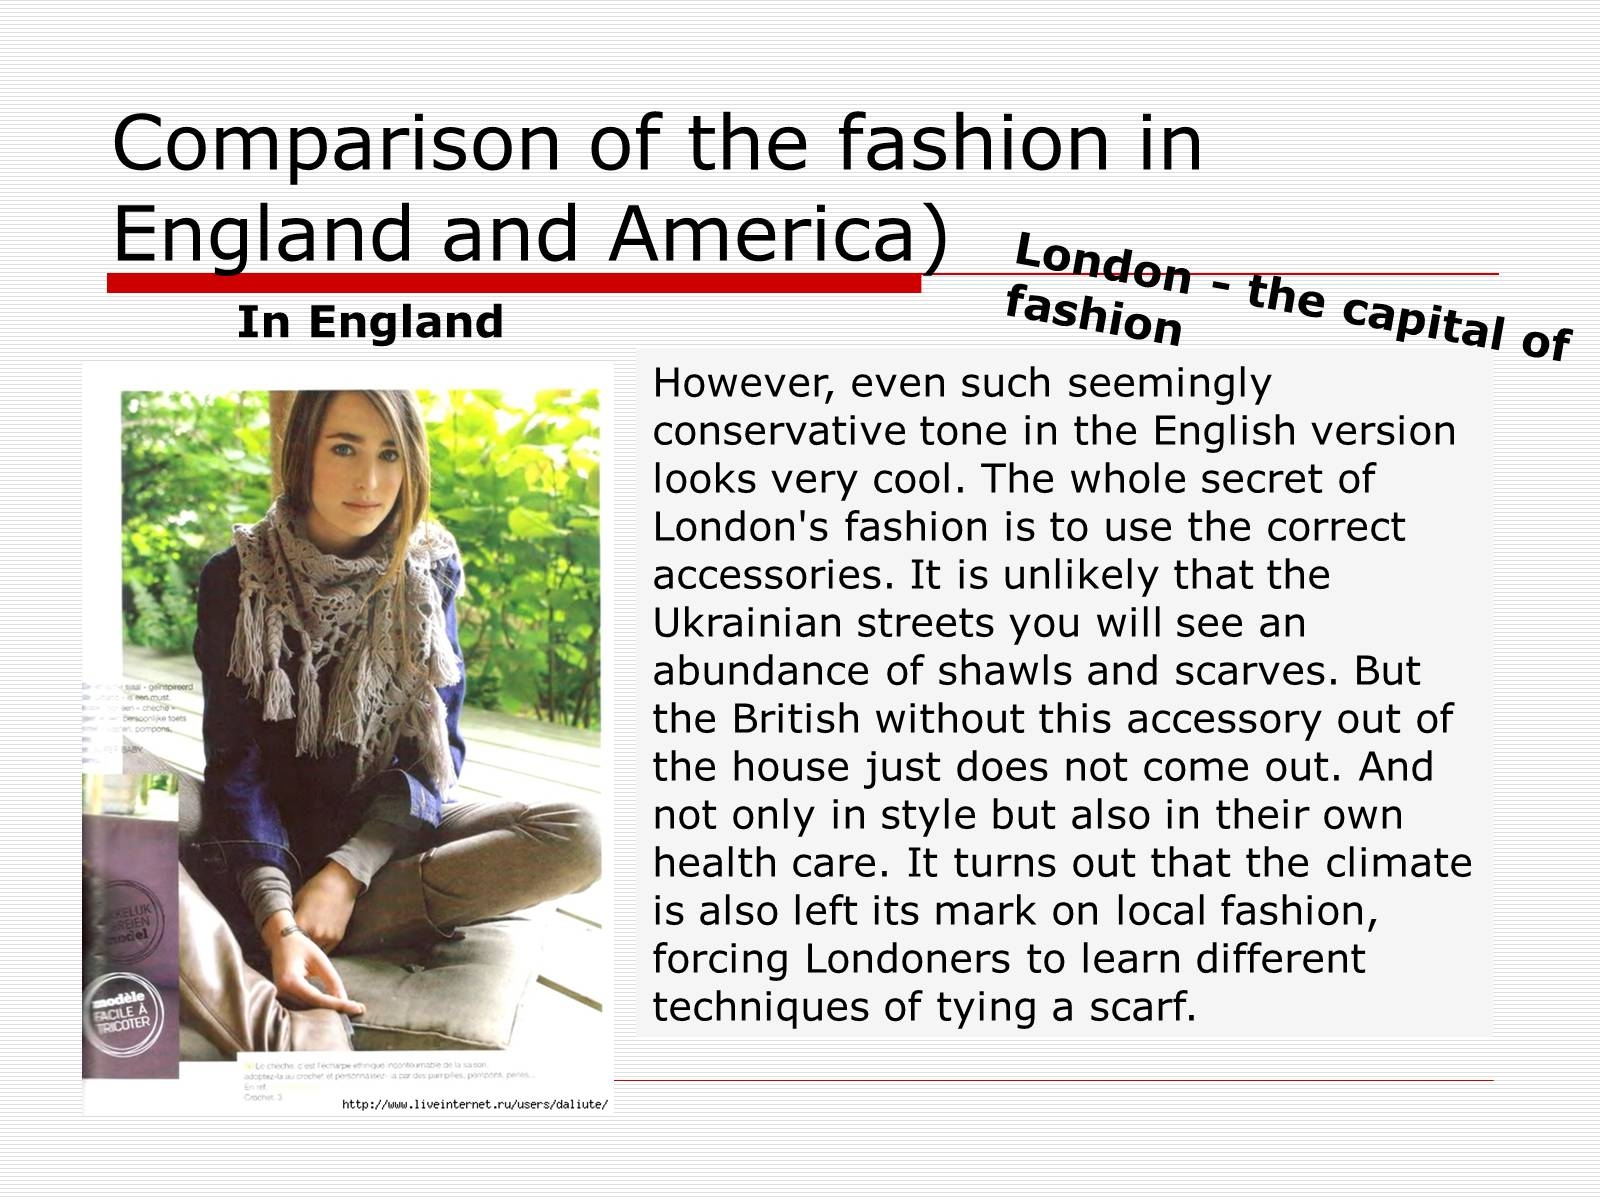 Презентація на тему «Comparison of the fashion in England and America» - Слайд #18